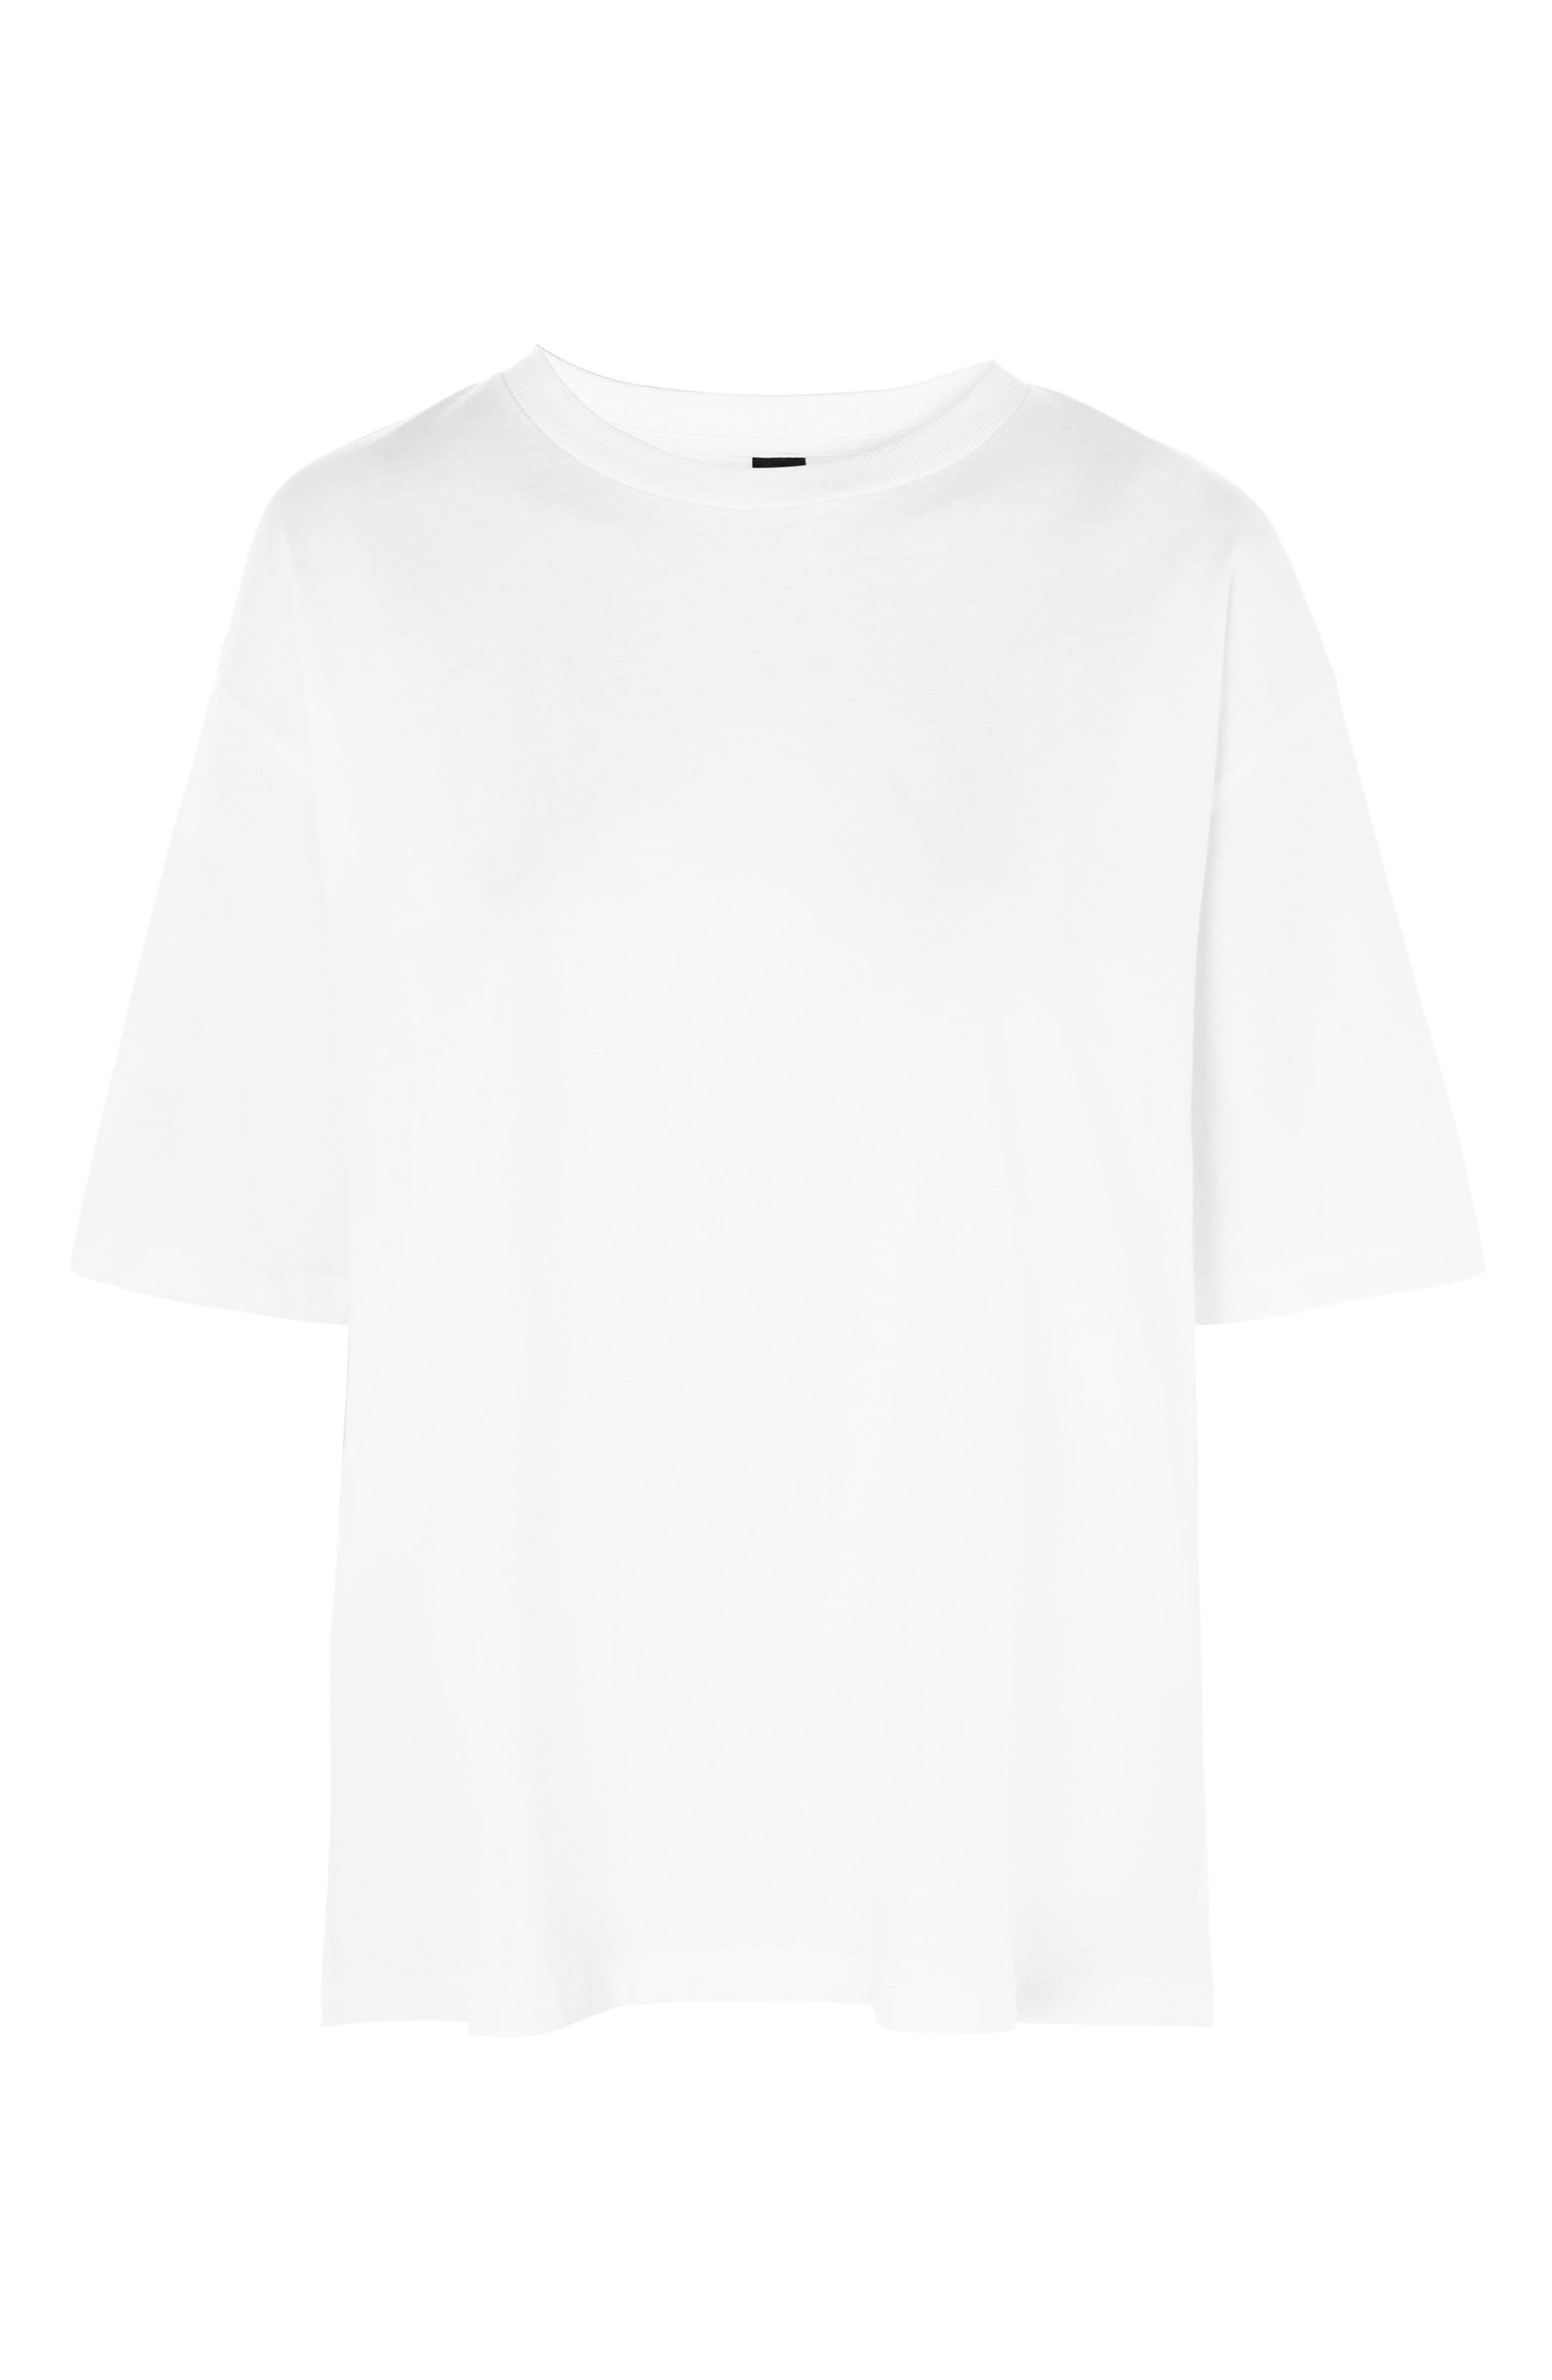 Boxy T-Shirt,                             Main thumbnail 1, color,                             White